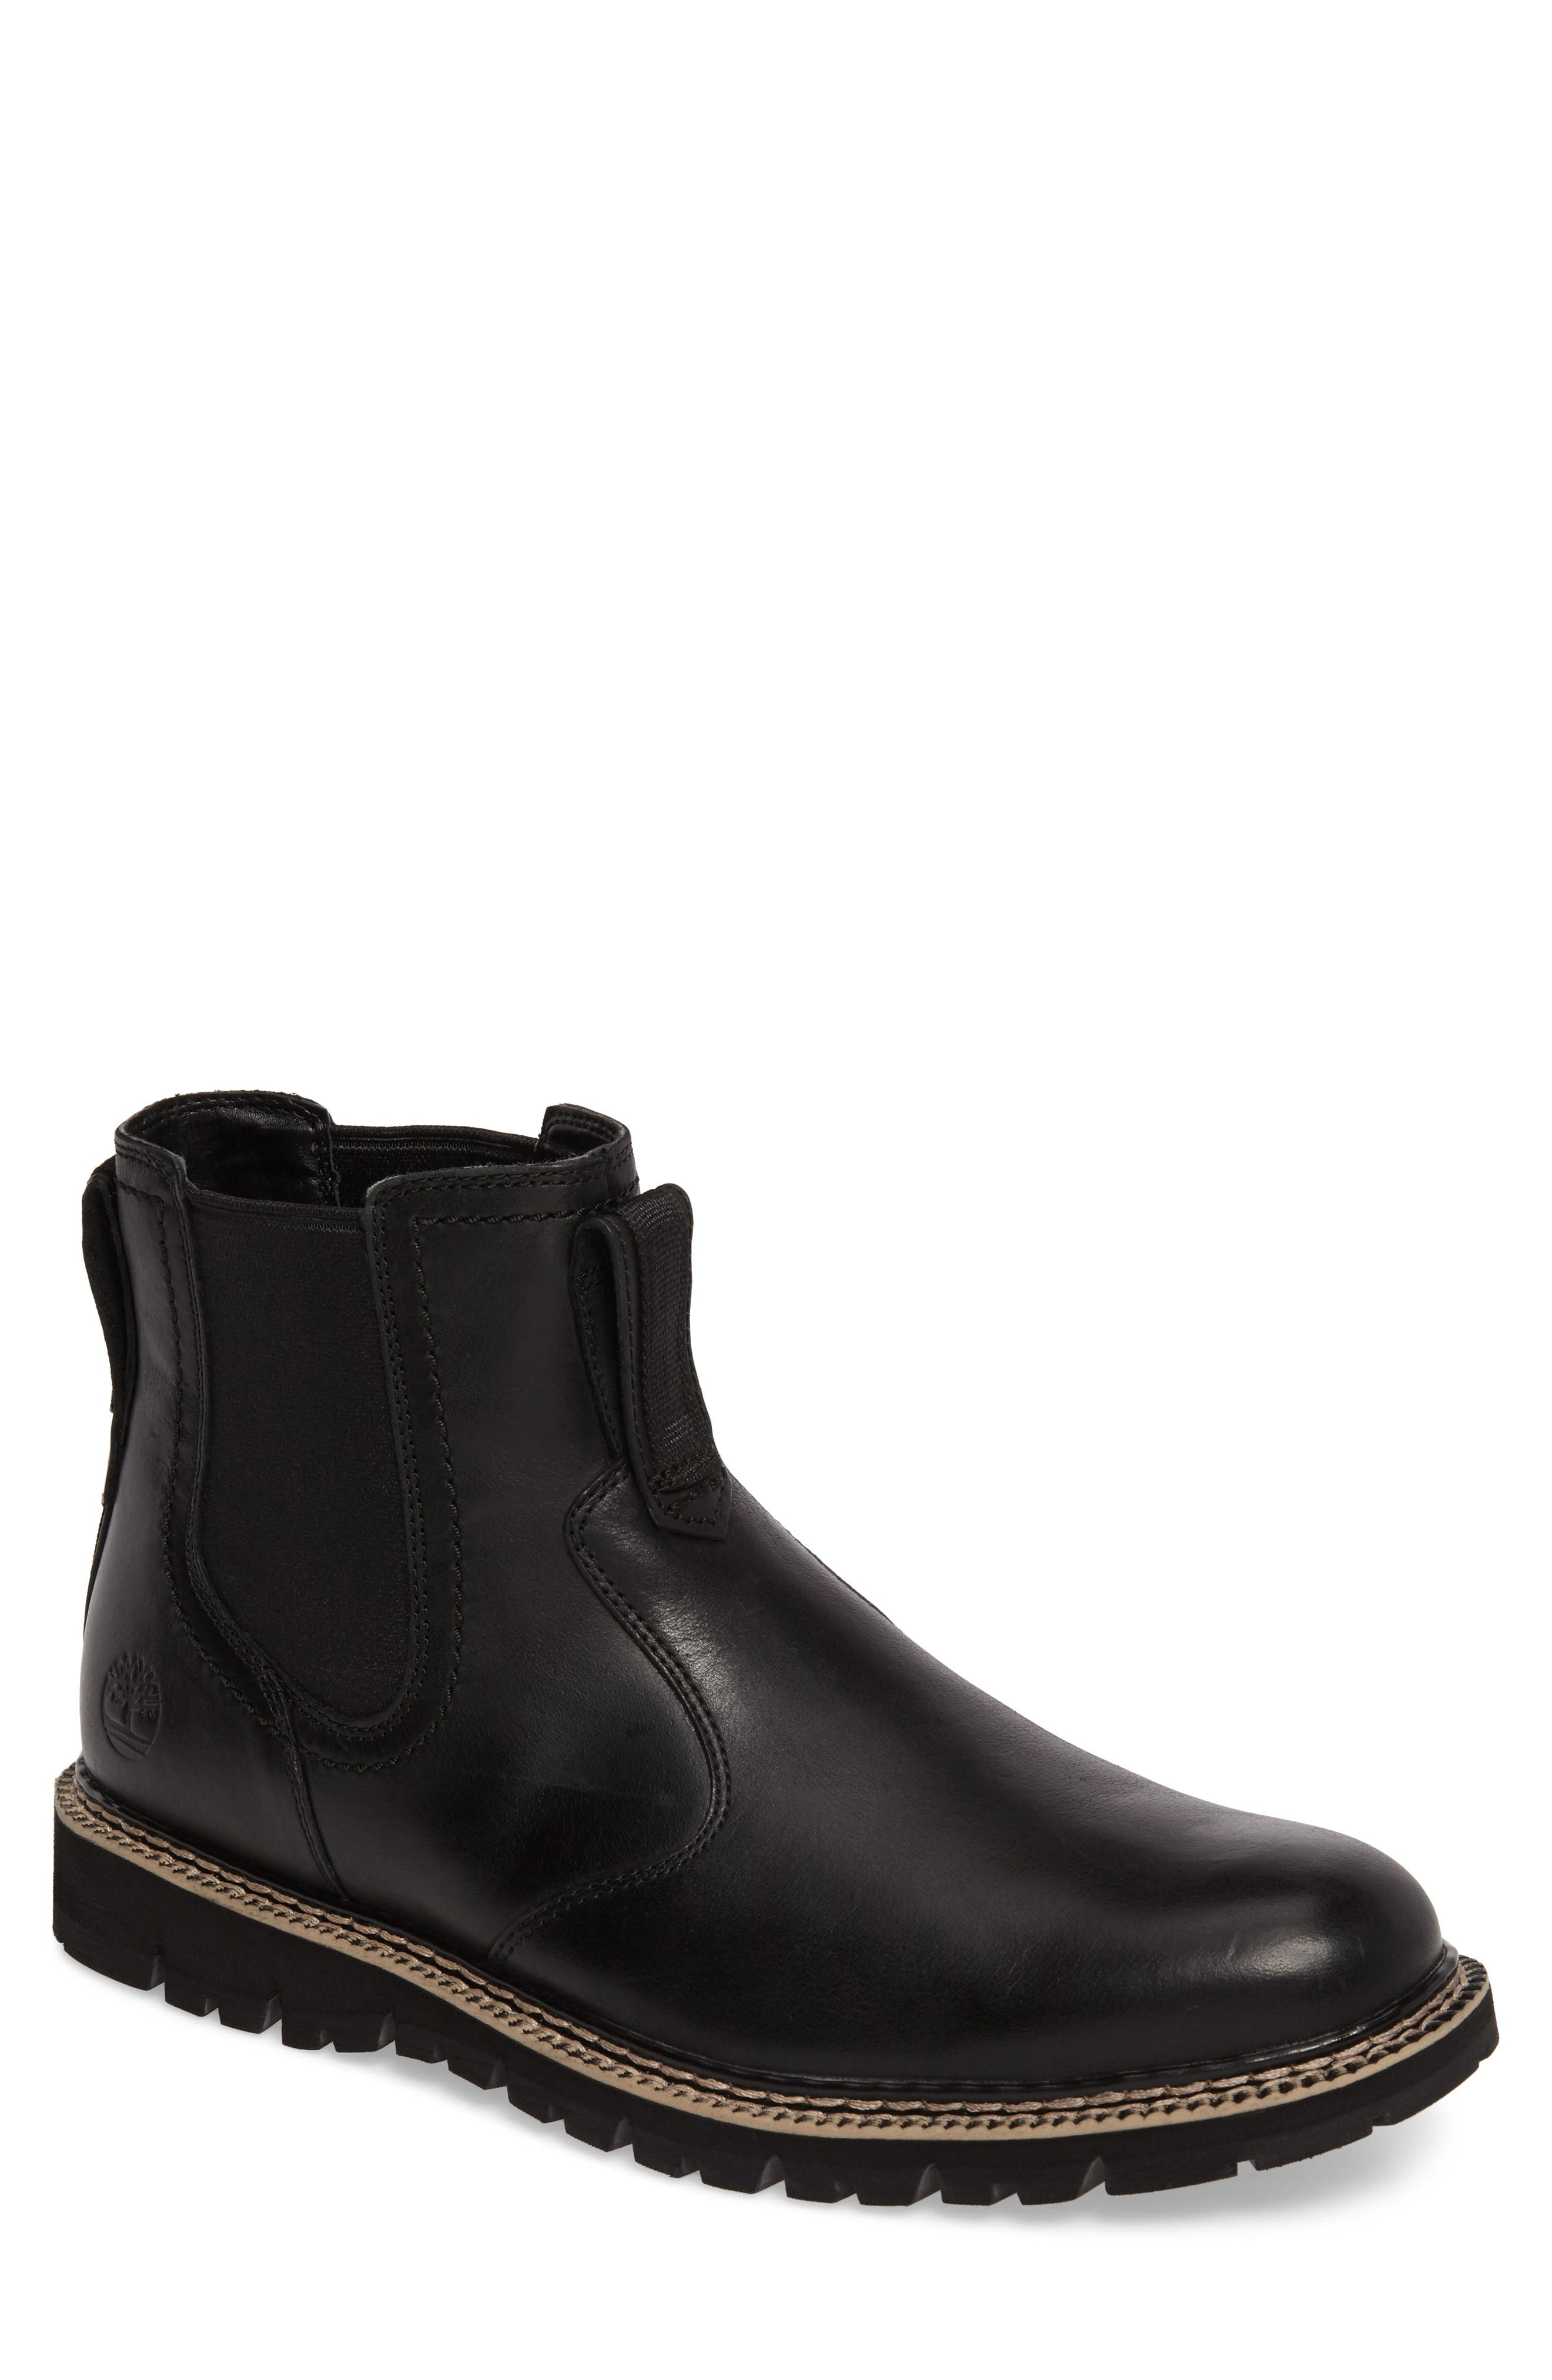 Alternate Image 1 Selected - Timberland Britton Hill Chelsea Boot (Men)